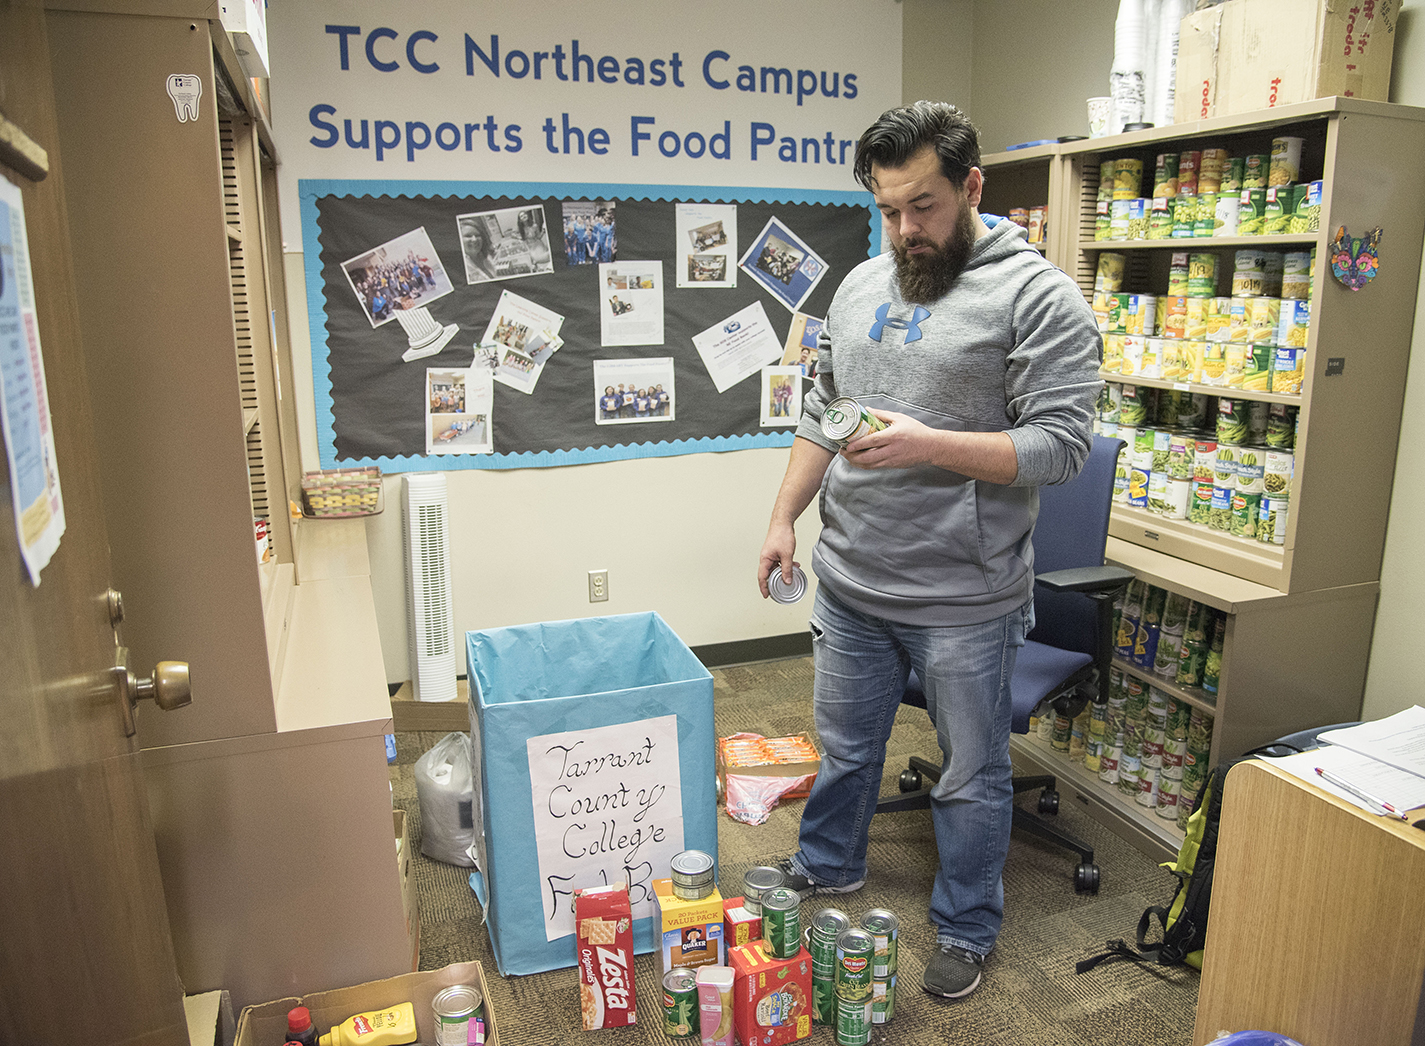 Fueling minds - The Collegian